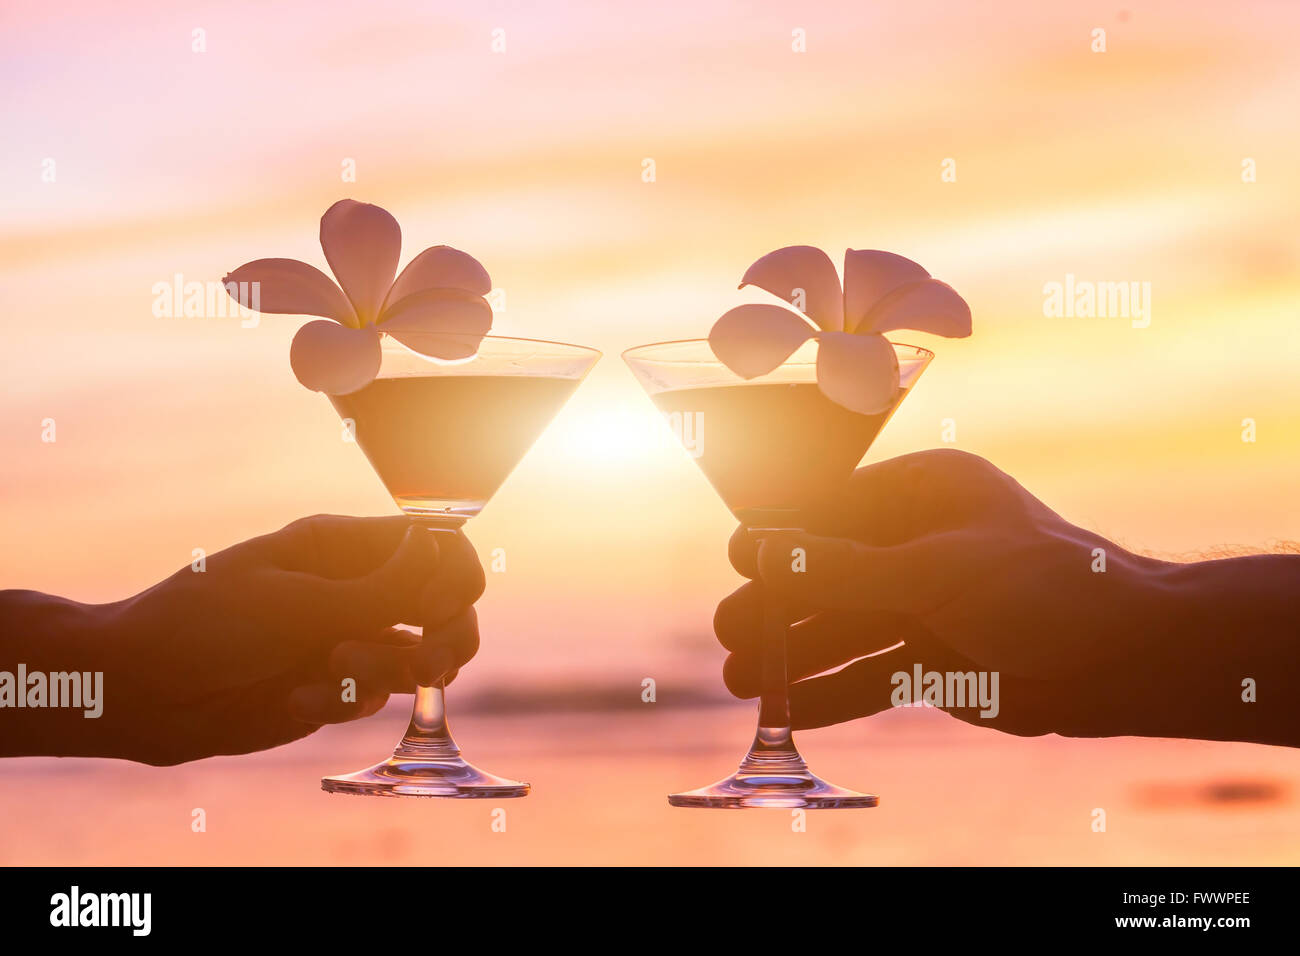 tropical cocktails on the beach, couple of hands with glasses - Stock Image